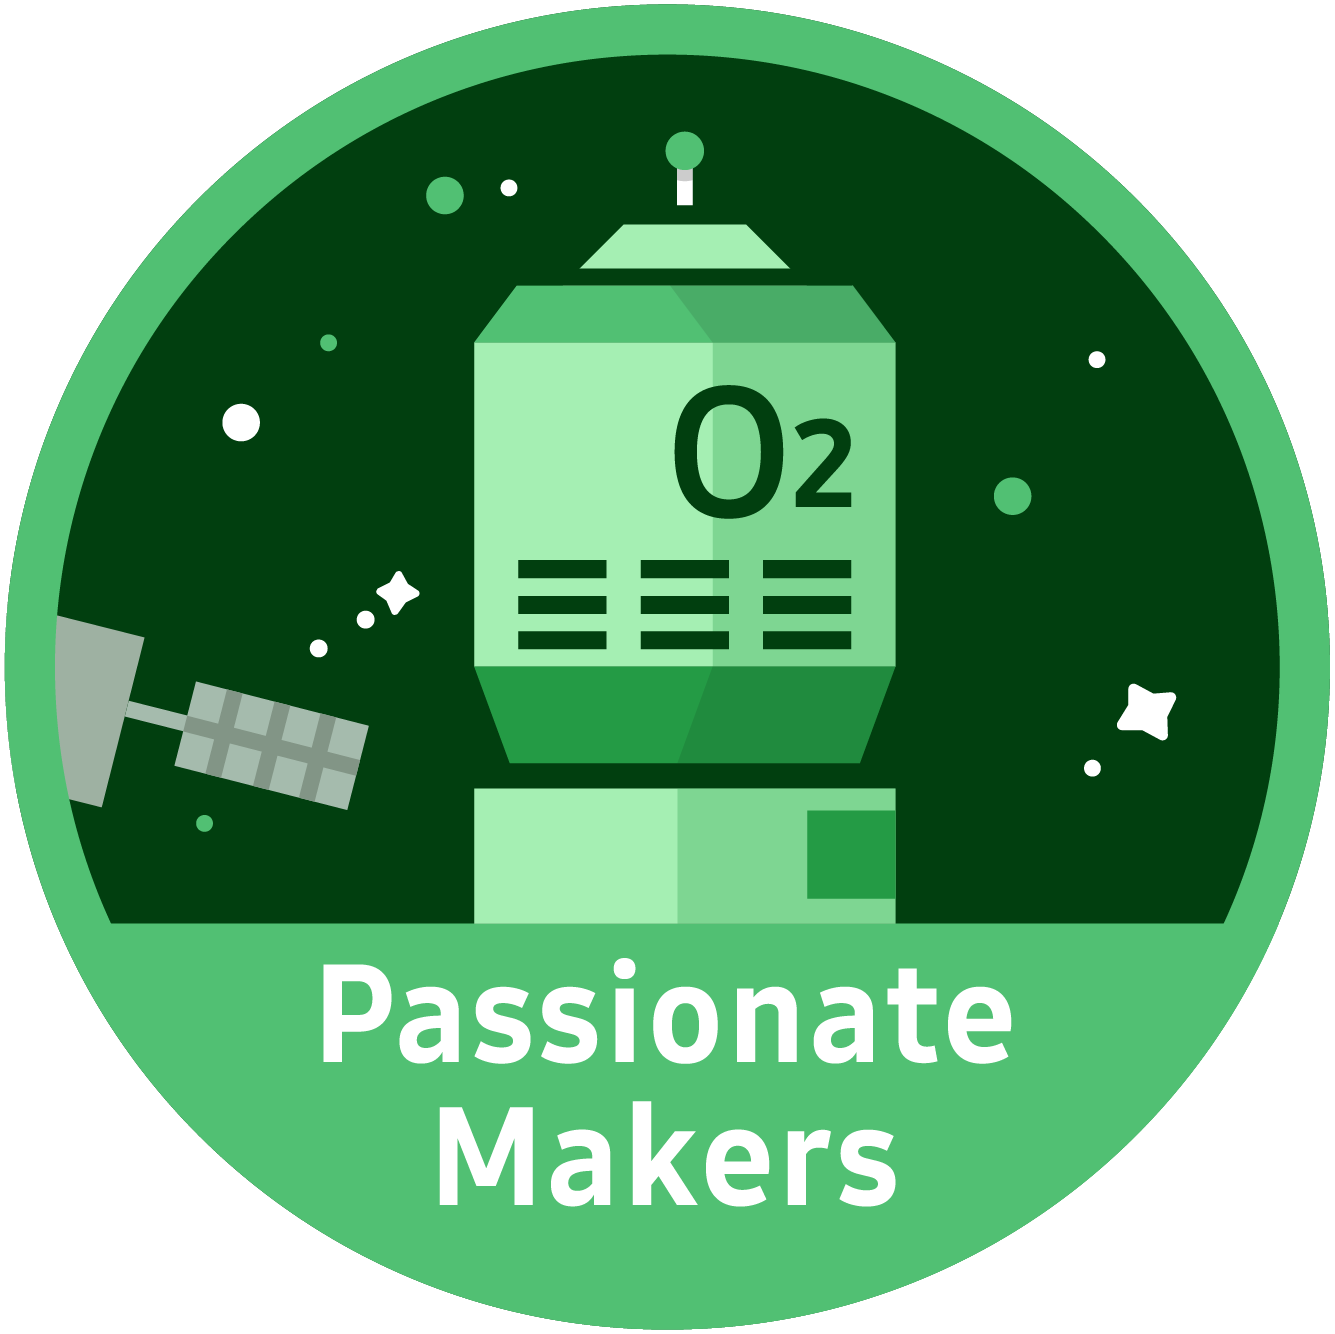 Passionate Makers